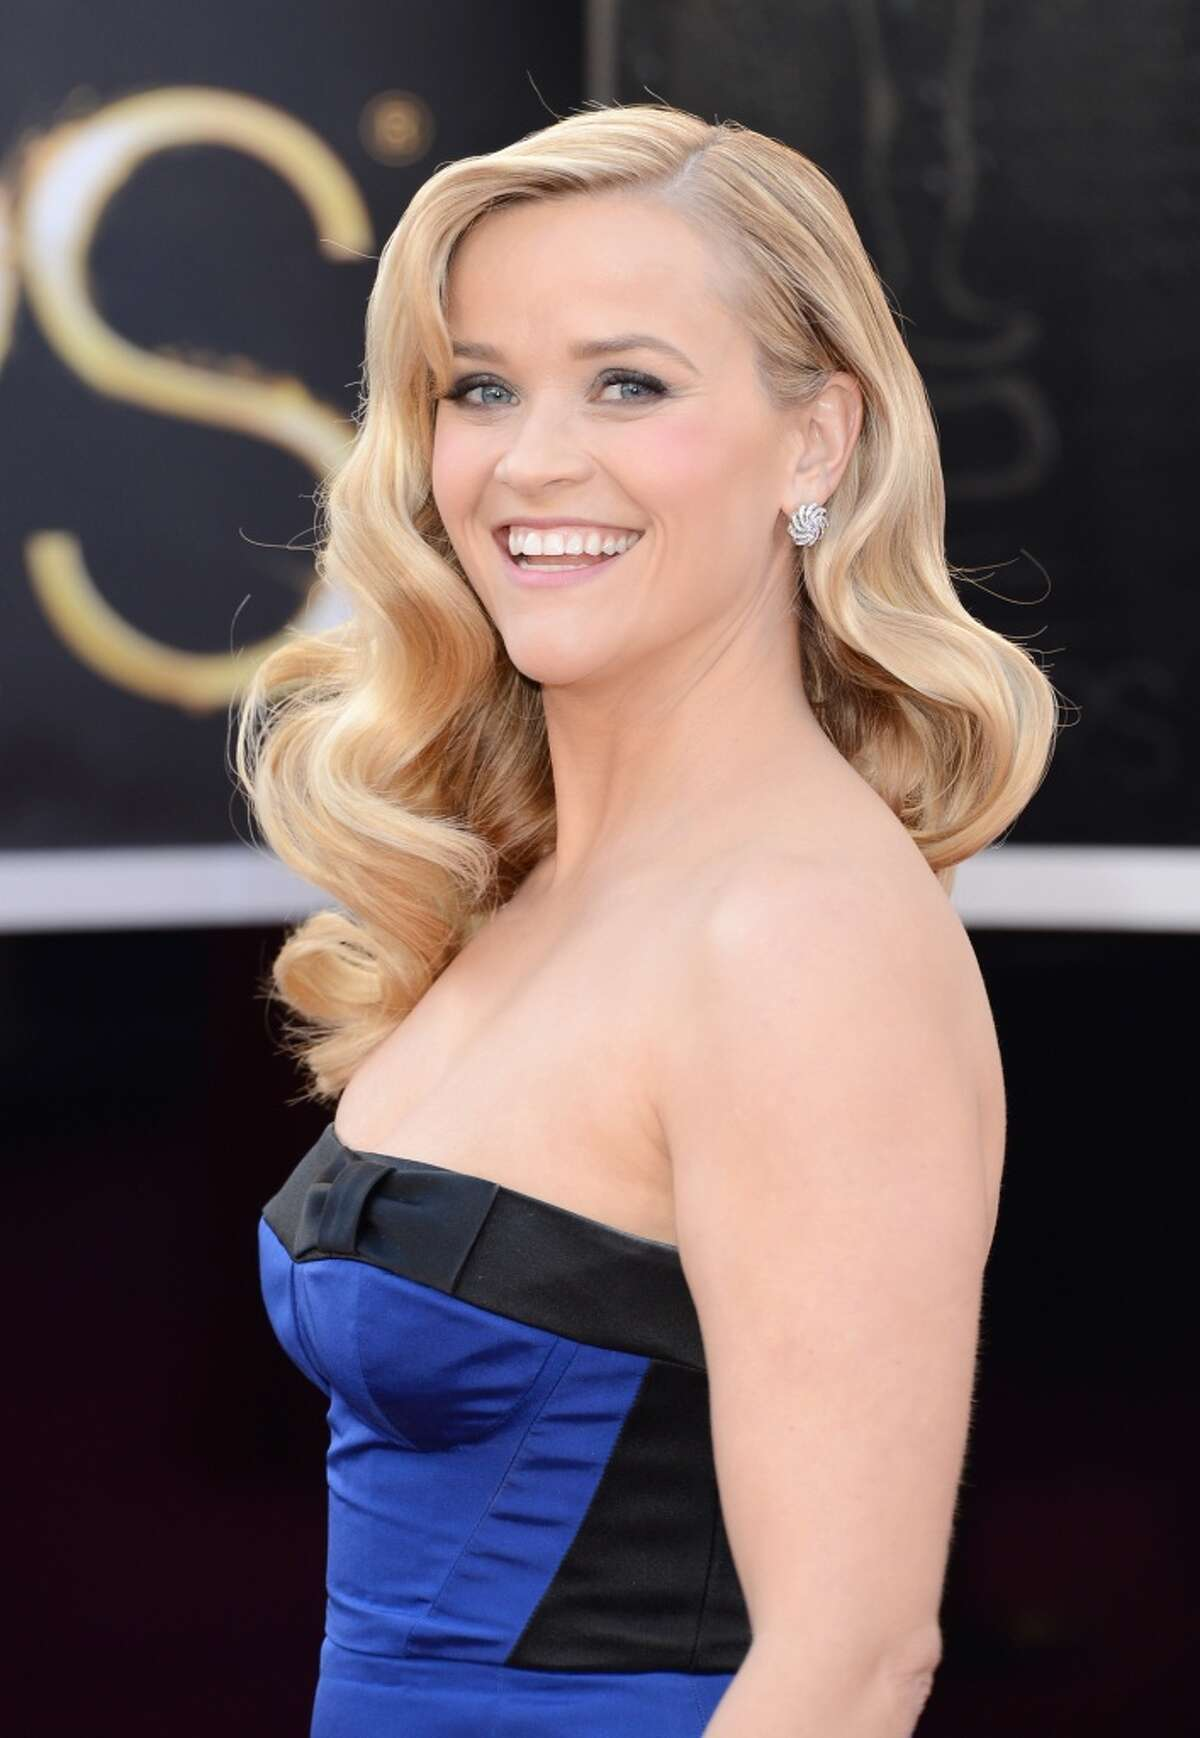 Famous Stanford University alums Reese Witherspoon: (Academy Award-winning actress) Major:English literature Fun fact:Witherspoon spent one year at Stanford before dropping out to pursue acting.